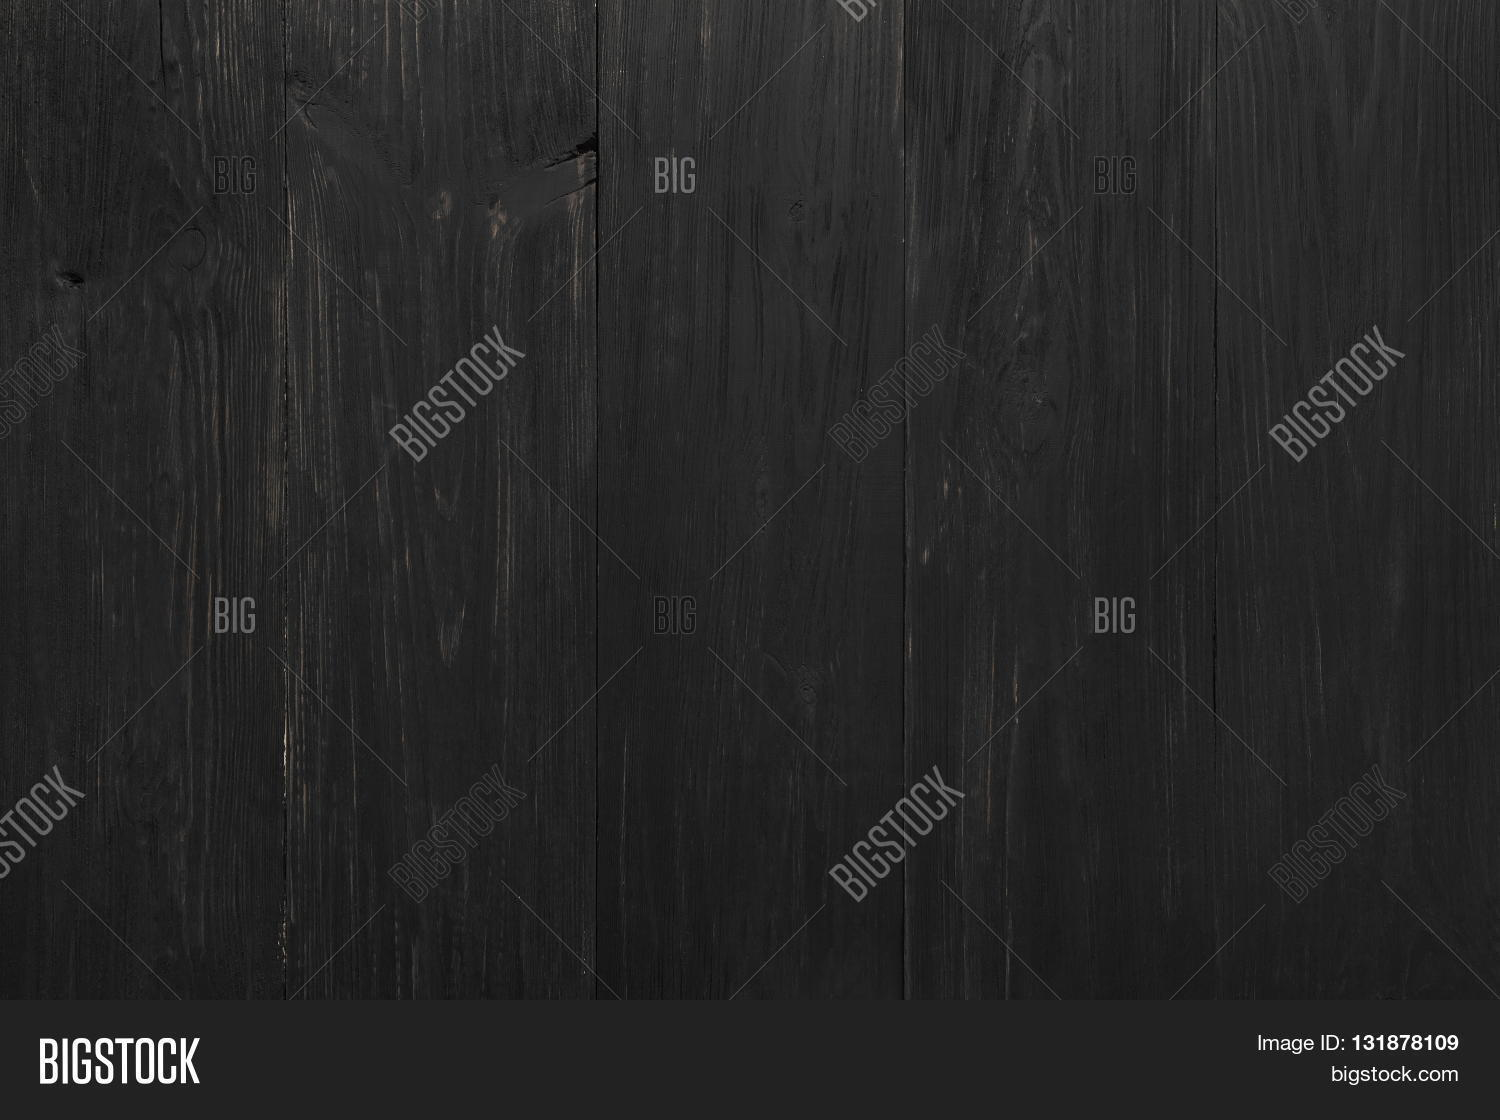 Black Rustic Wood Texture And Background Old Wooden